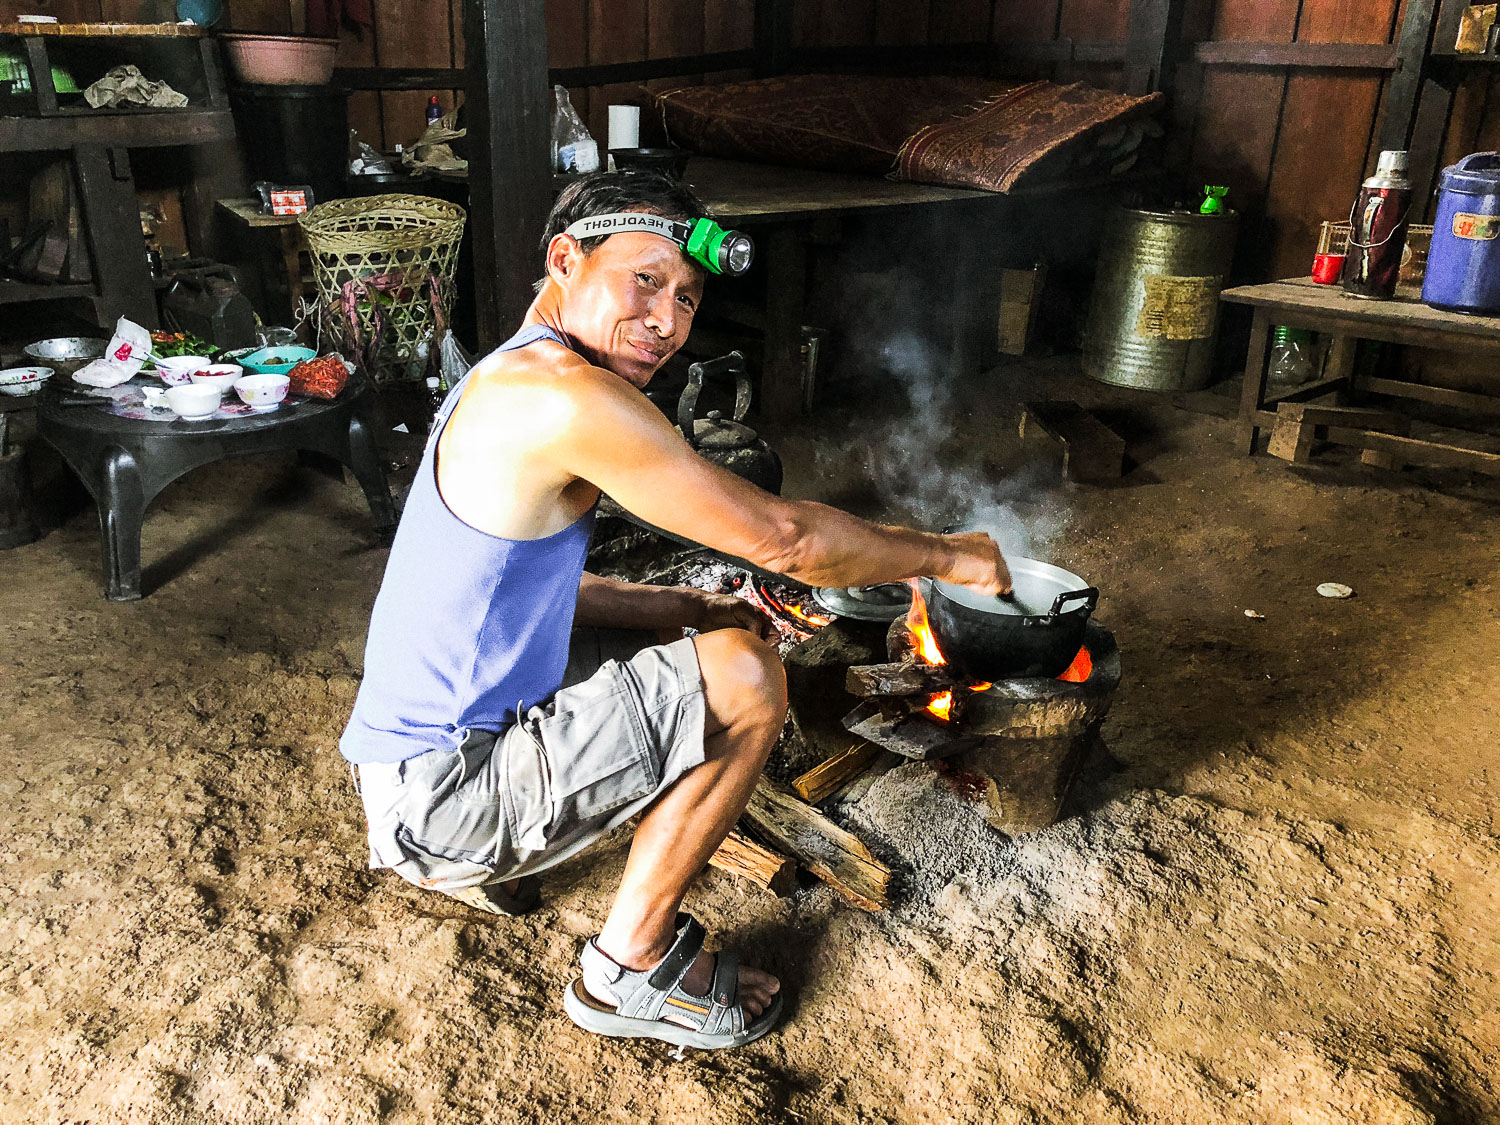 man cooking over a fire - Documentary Photos